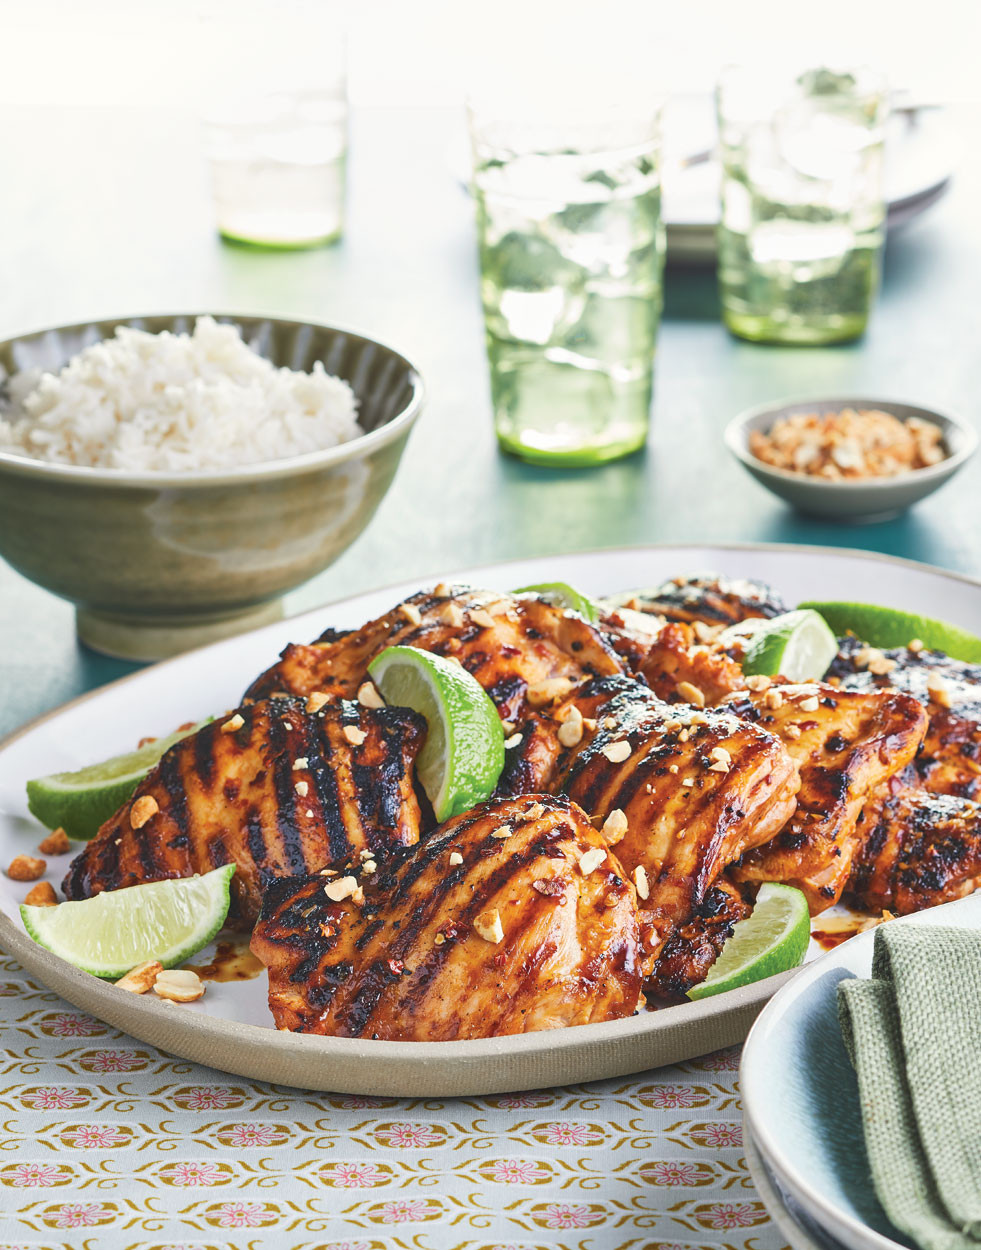 Grilled Chicken Thighs Marinade  Grilled Chicken Thighs with Sambal Marinade Recipe